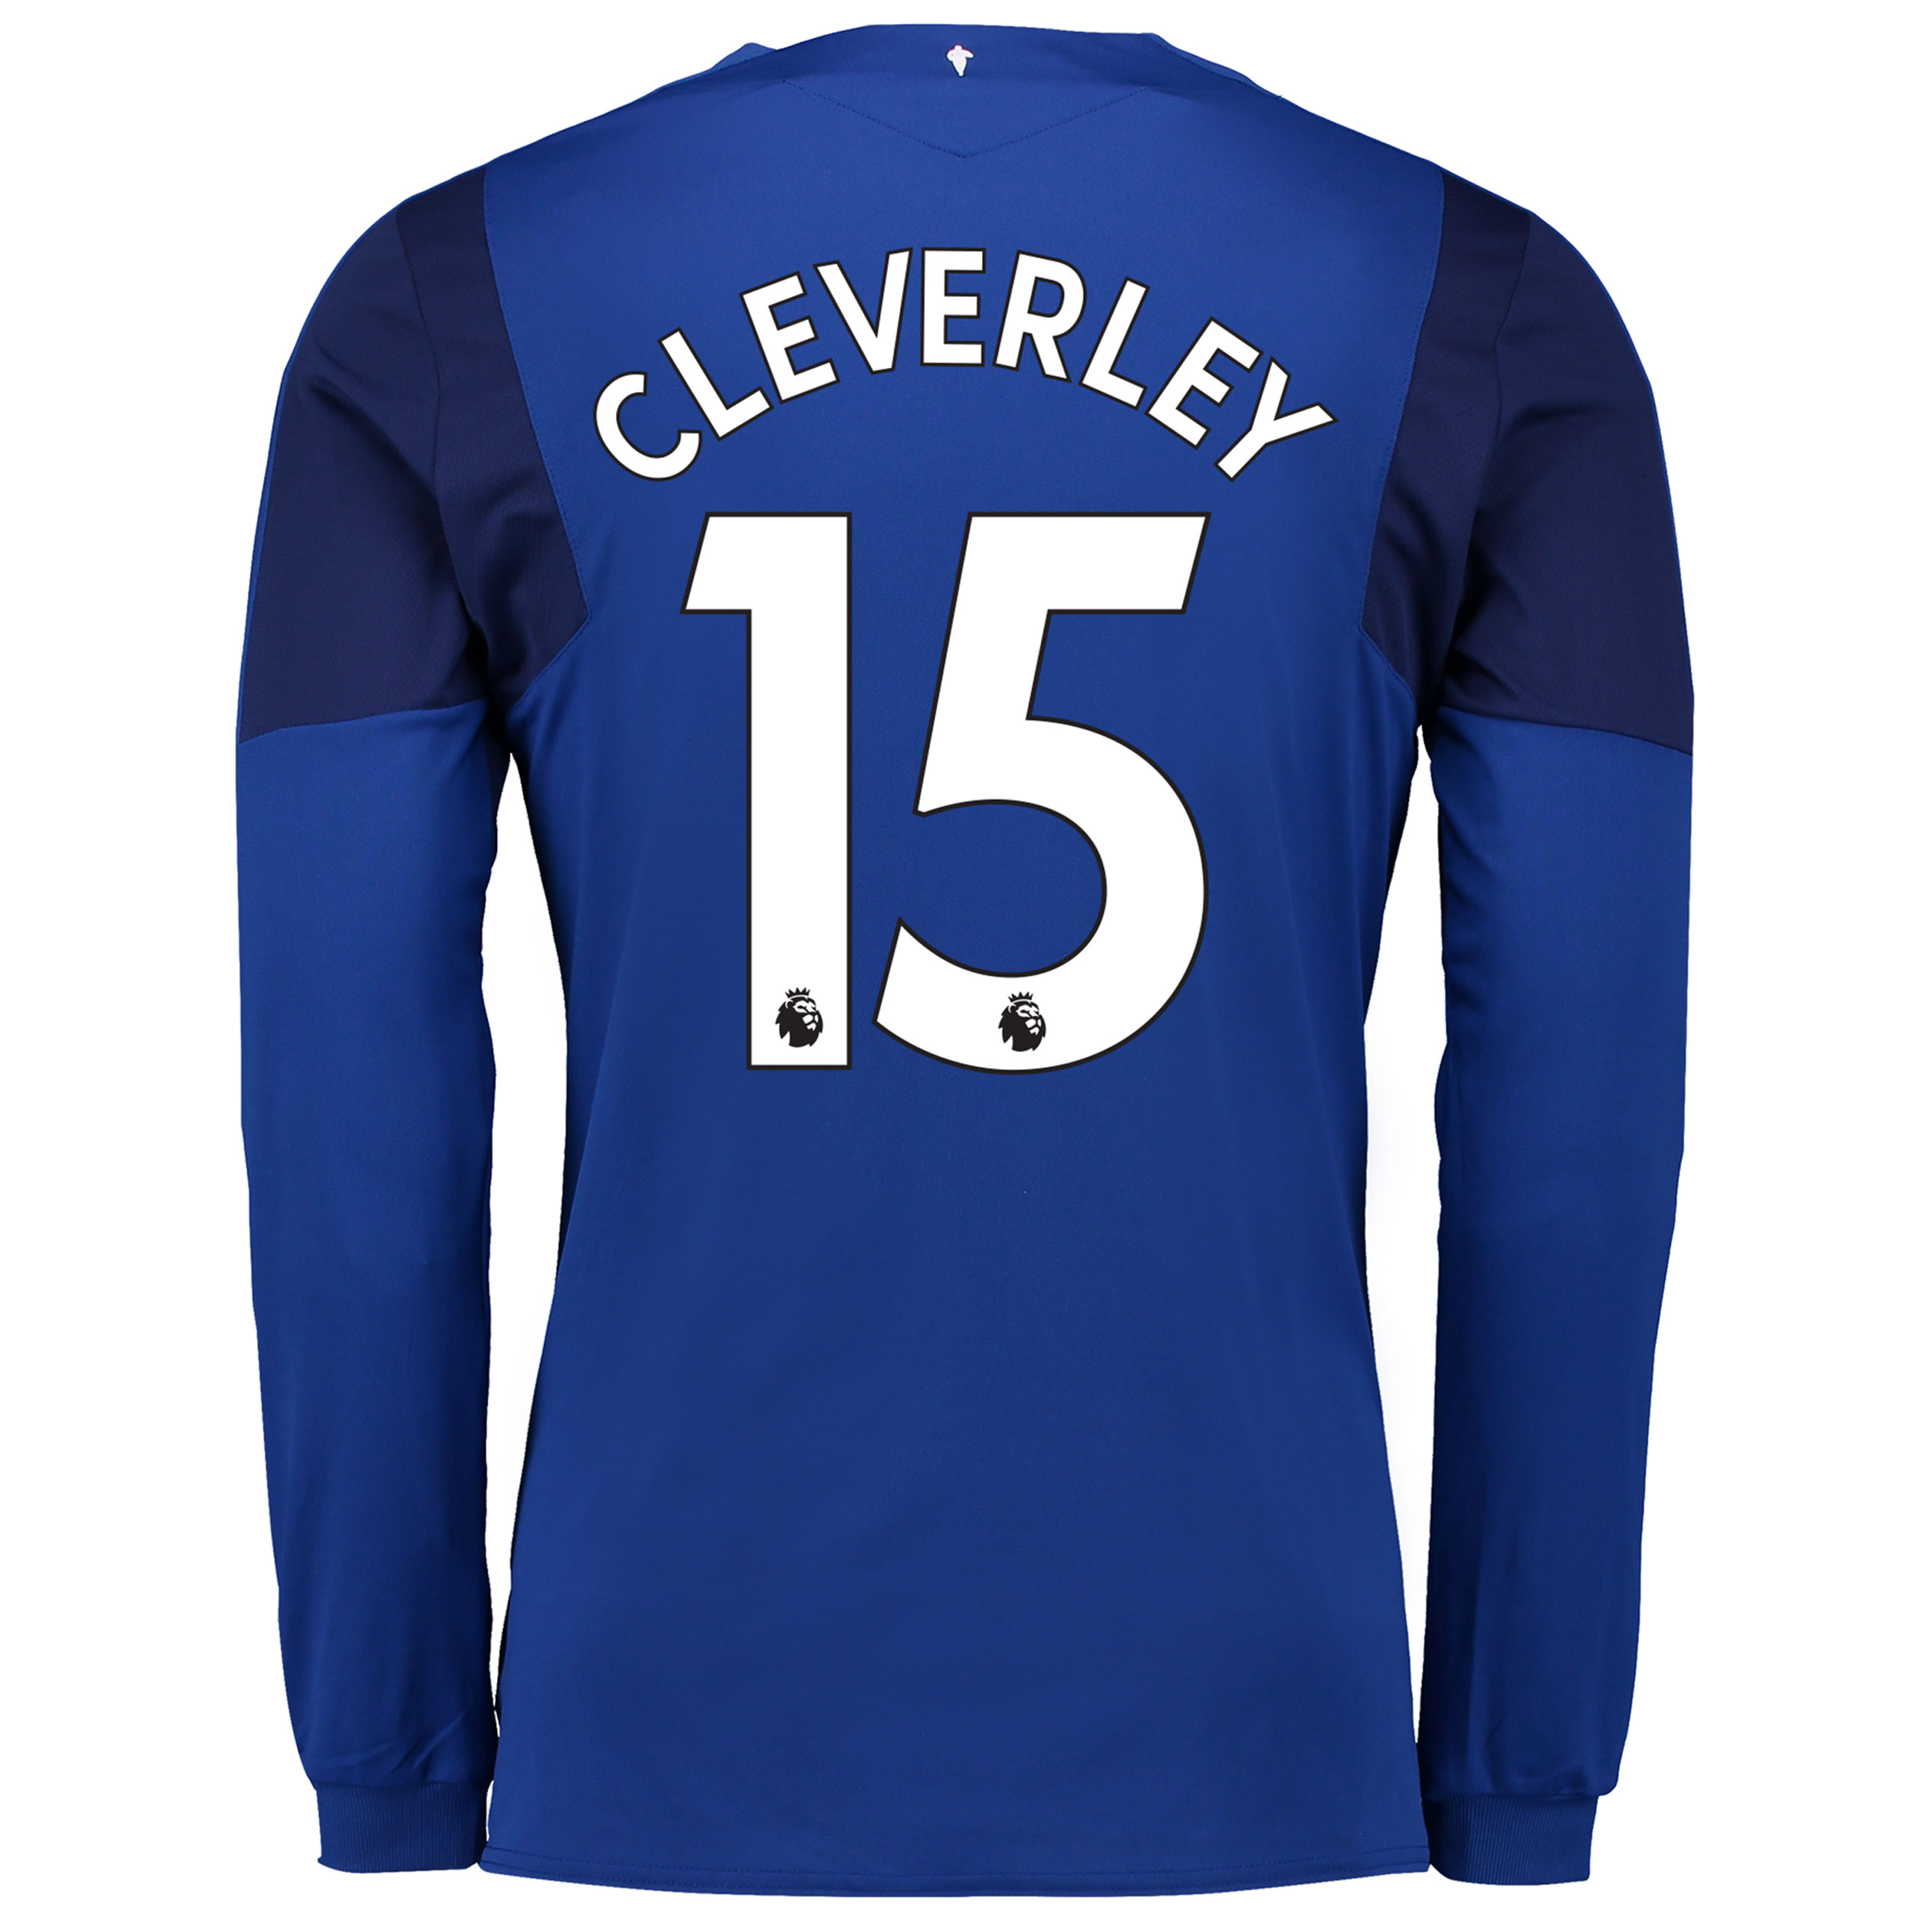 Everton Home Shirt 2017/18 - Junior - Long Sleeved with Cleverley 15 p